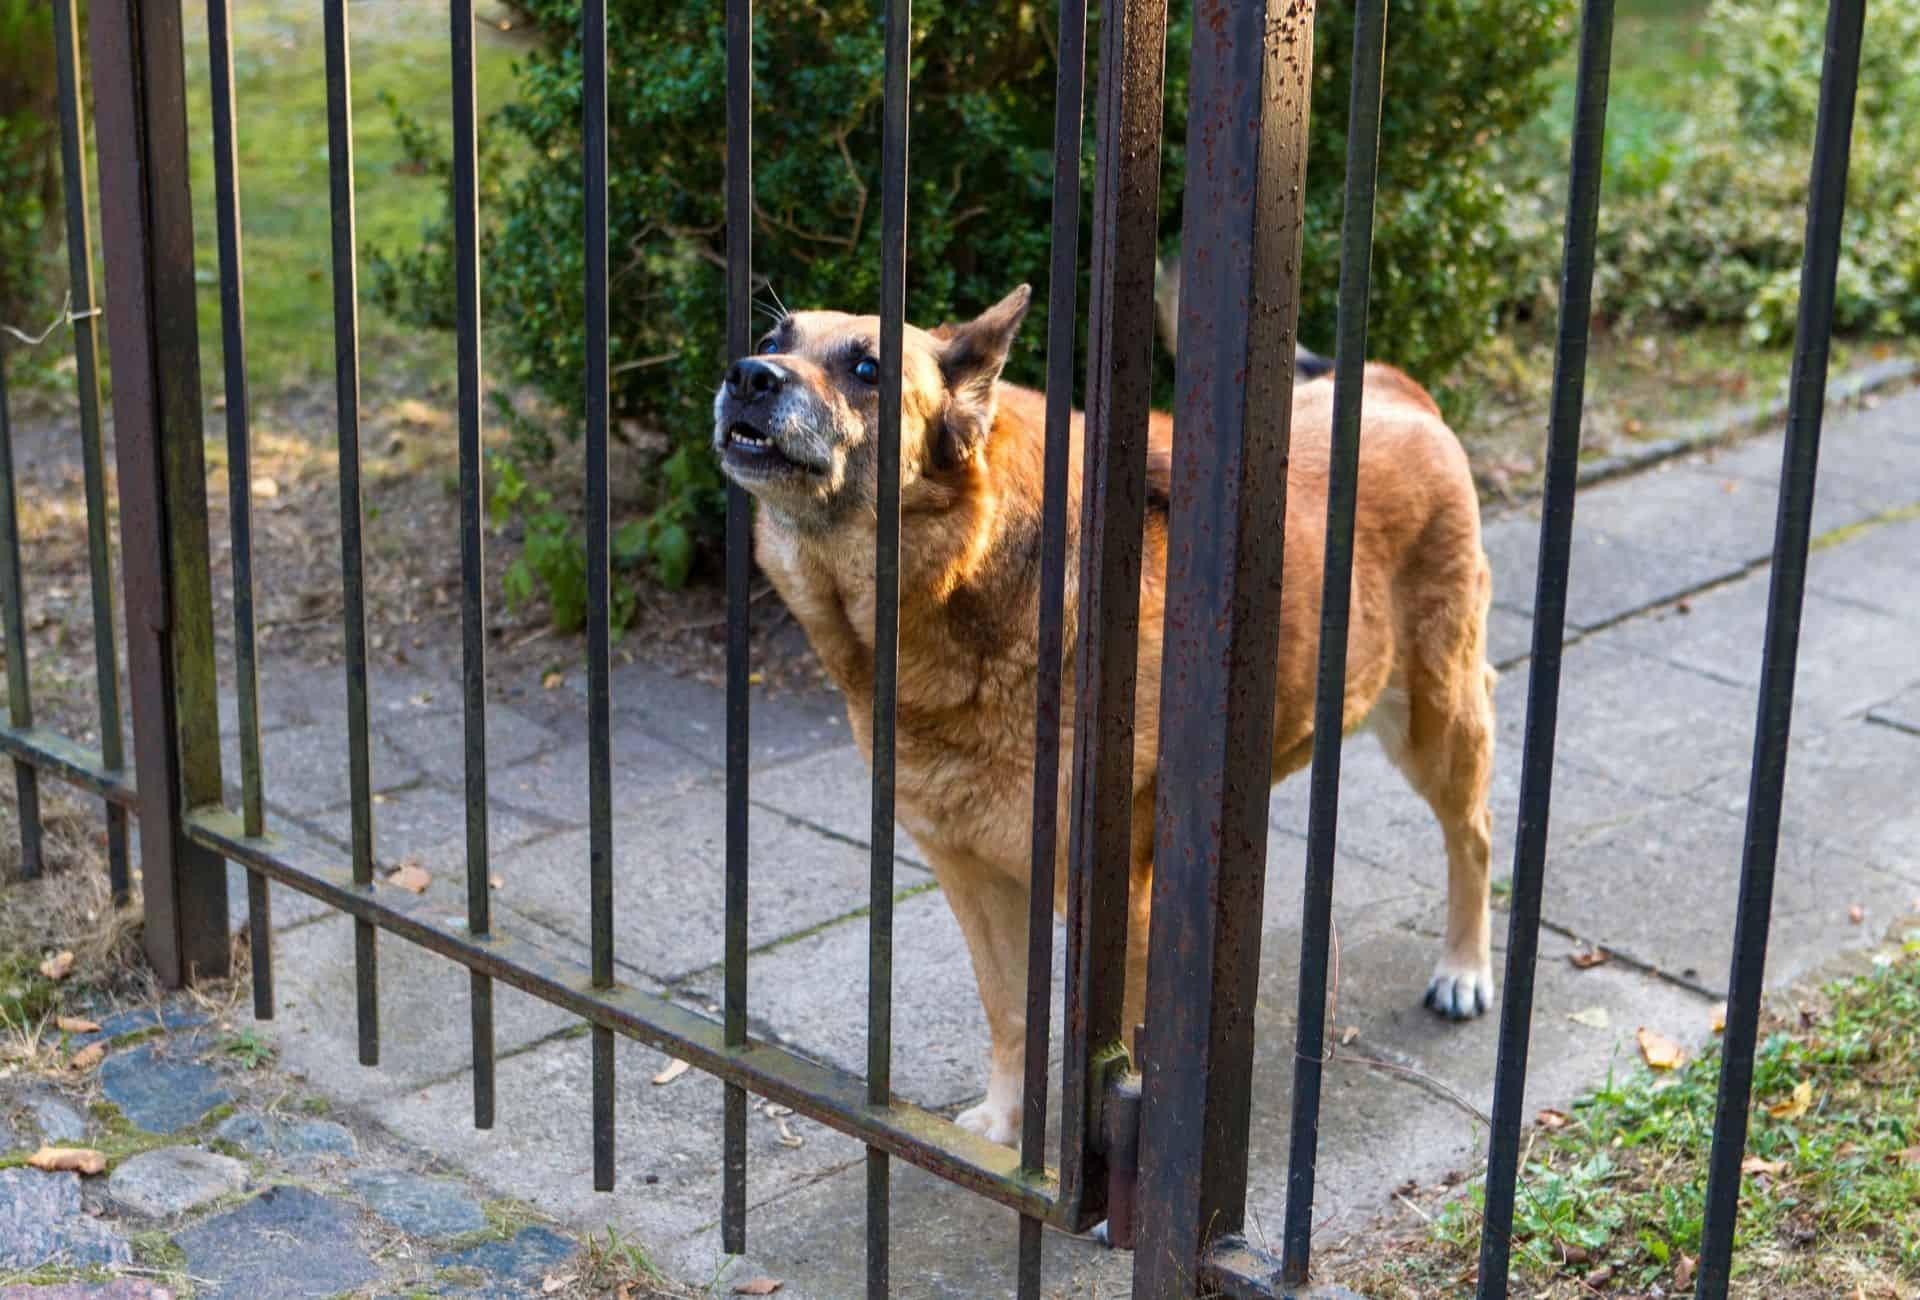 Dog presses his snout through the gate to bark at the neighbor or passerby.